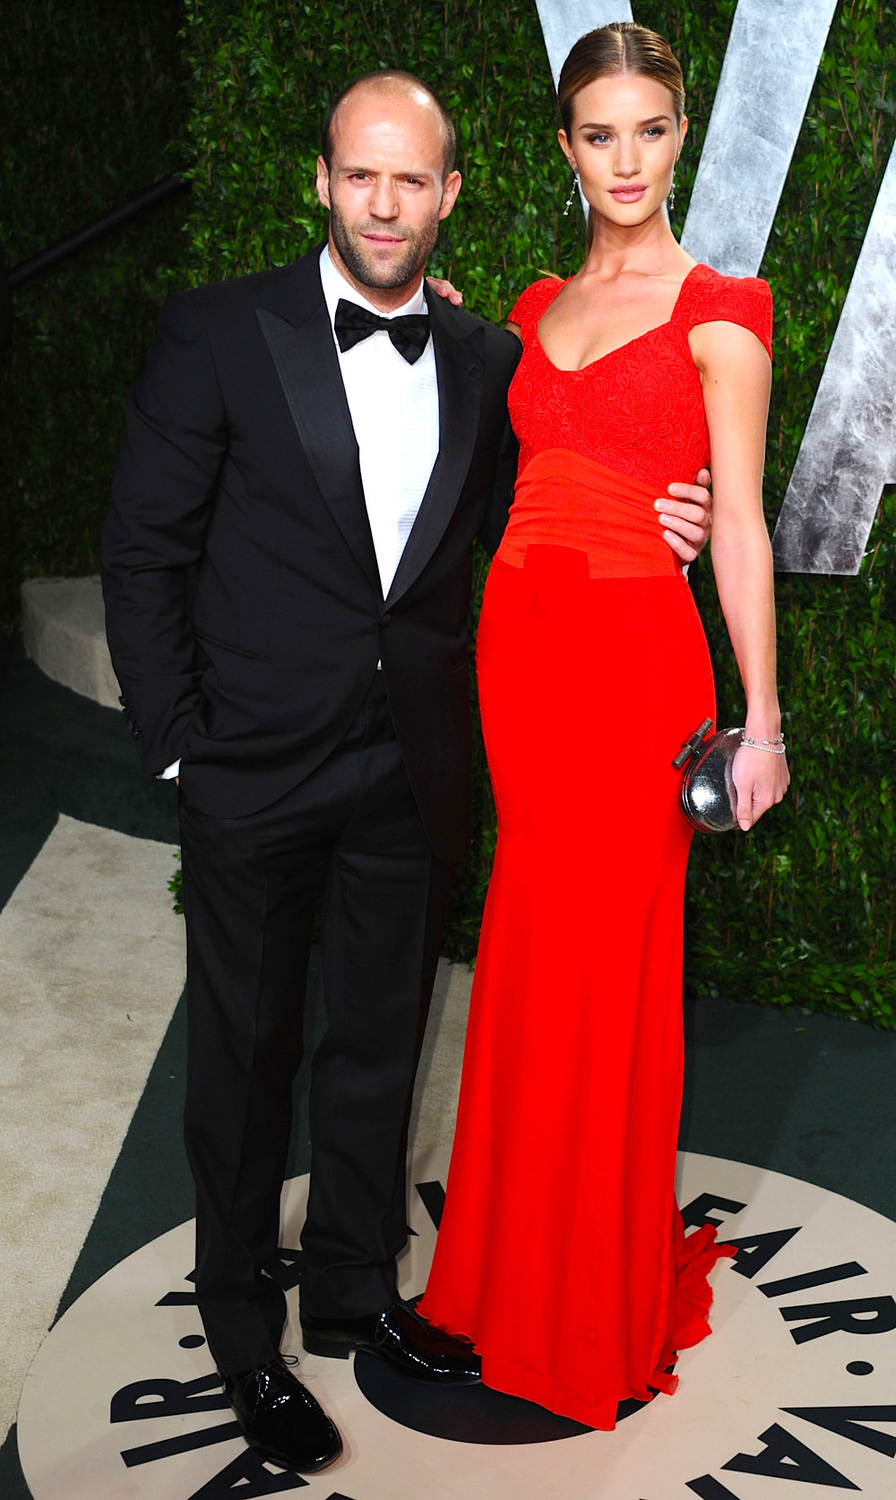 WEST HOLLYWOOD, CA - FEBRUARY 26: Actor Jason Statham (L) and actress Rosie Huntington-Whiteley arrives at the 2012 Vanity Fair Oscar Party hosted by Graydon Carter at Sunset Tower on February 26, 2012 in West Hollywood, California. (Photo by Alberto E. Rodriguez/Getty Images)